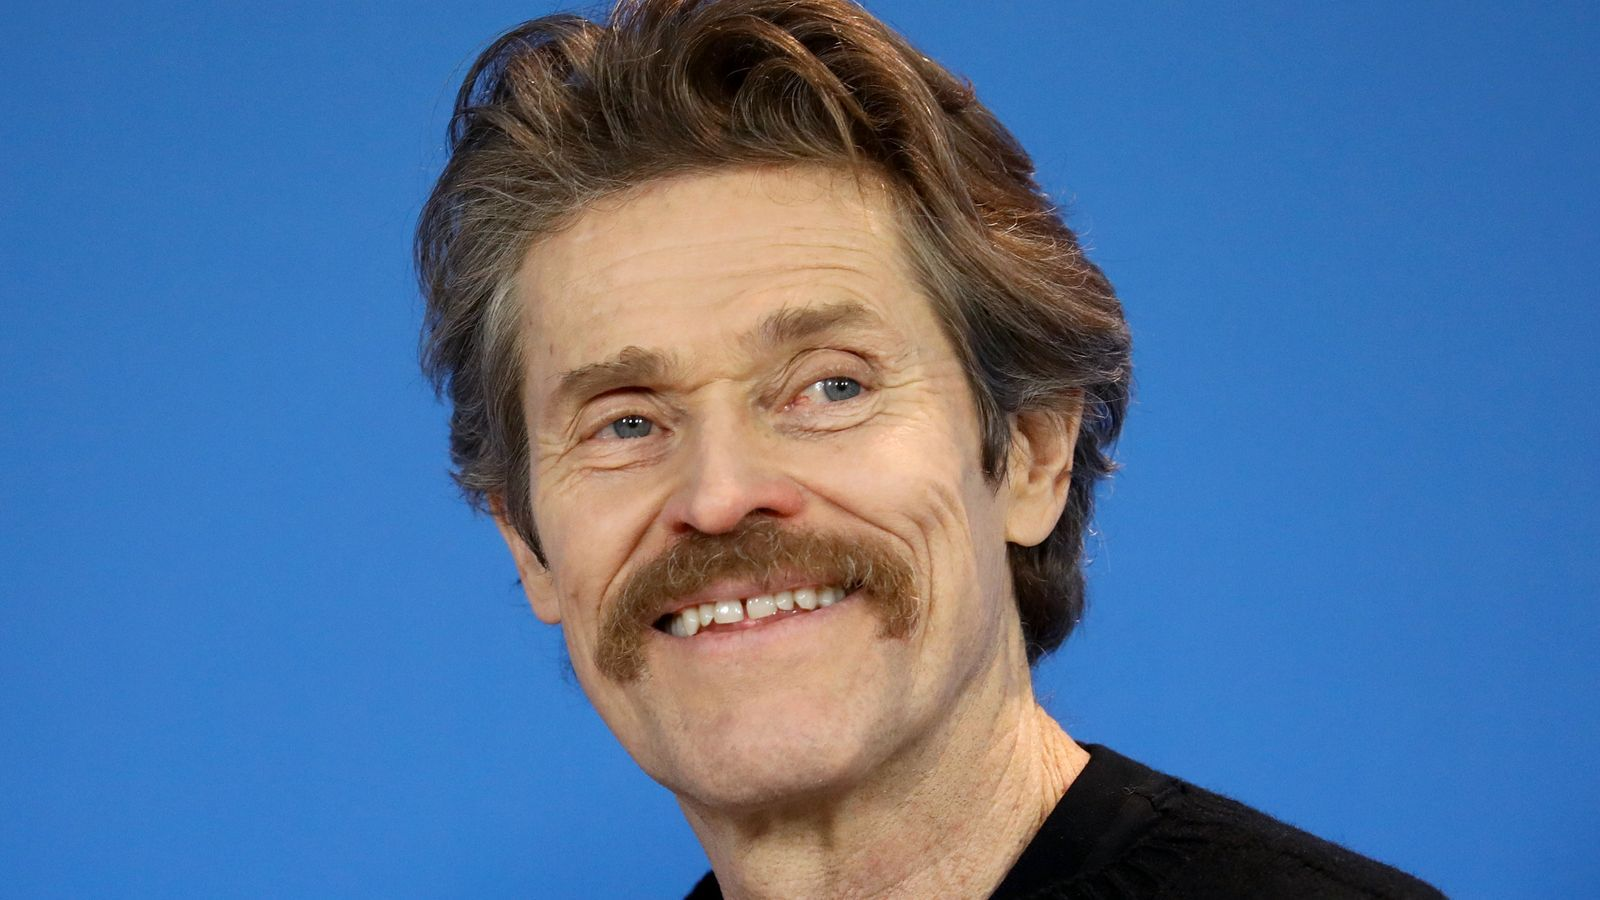 Willem Dafoe fotografiat el febrer d'aquest any a la Berlinale